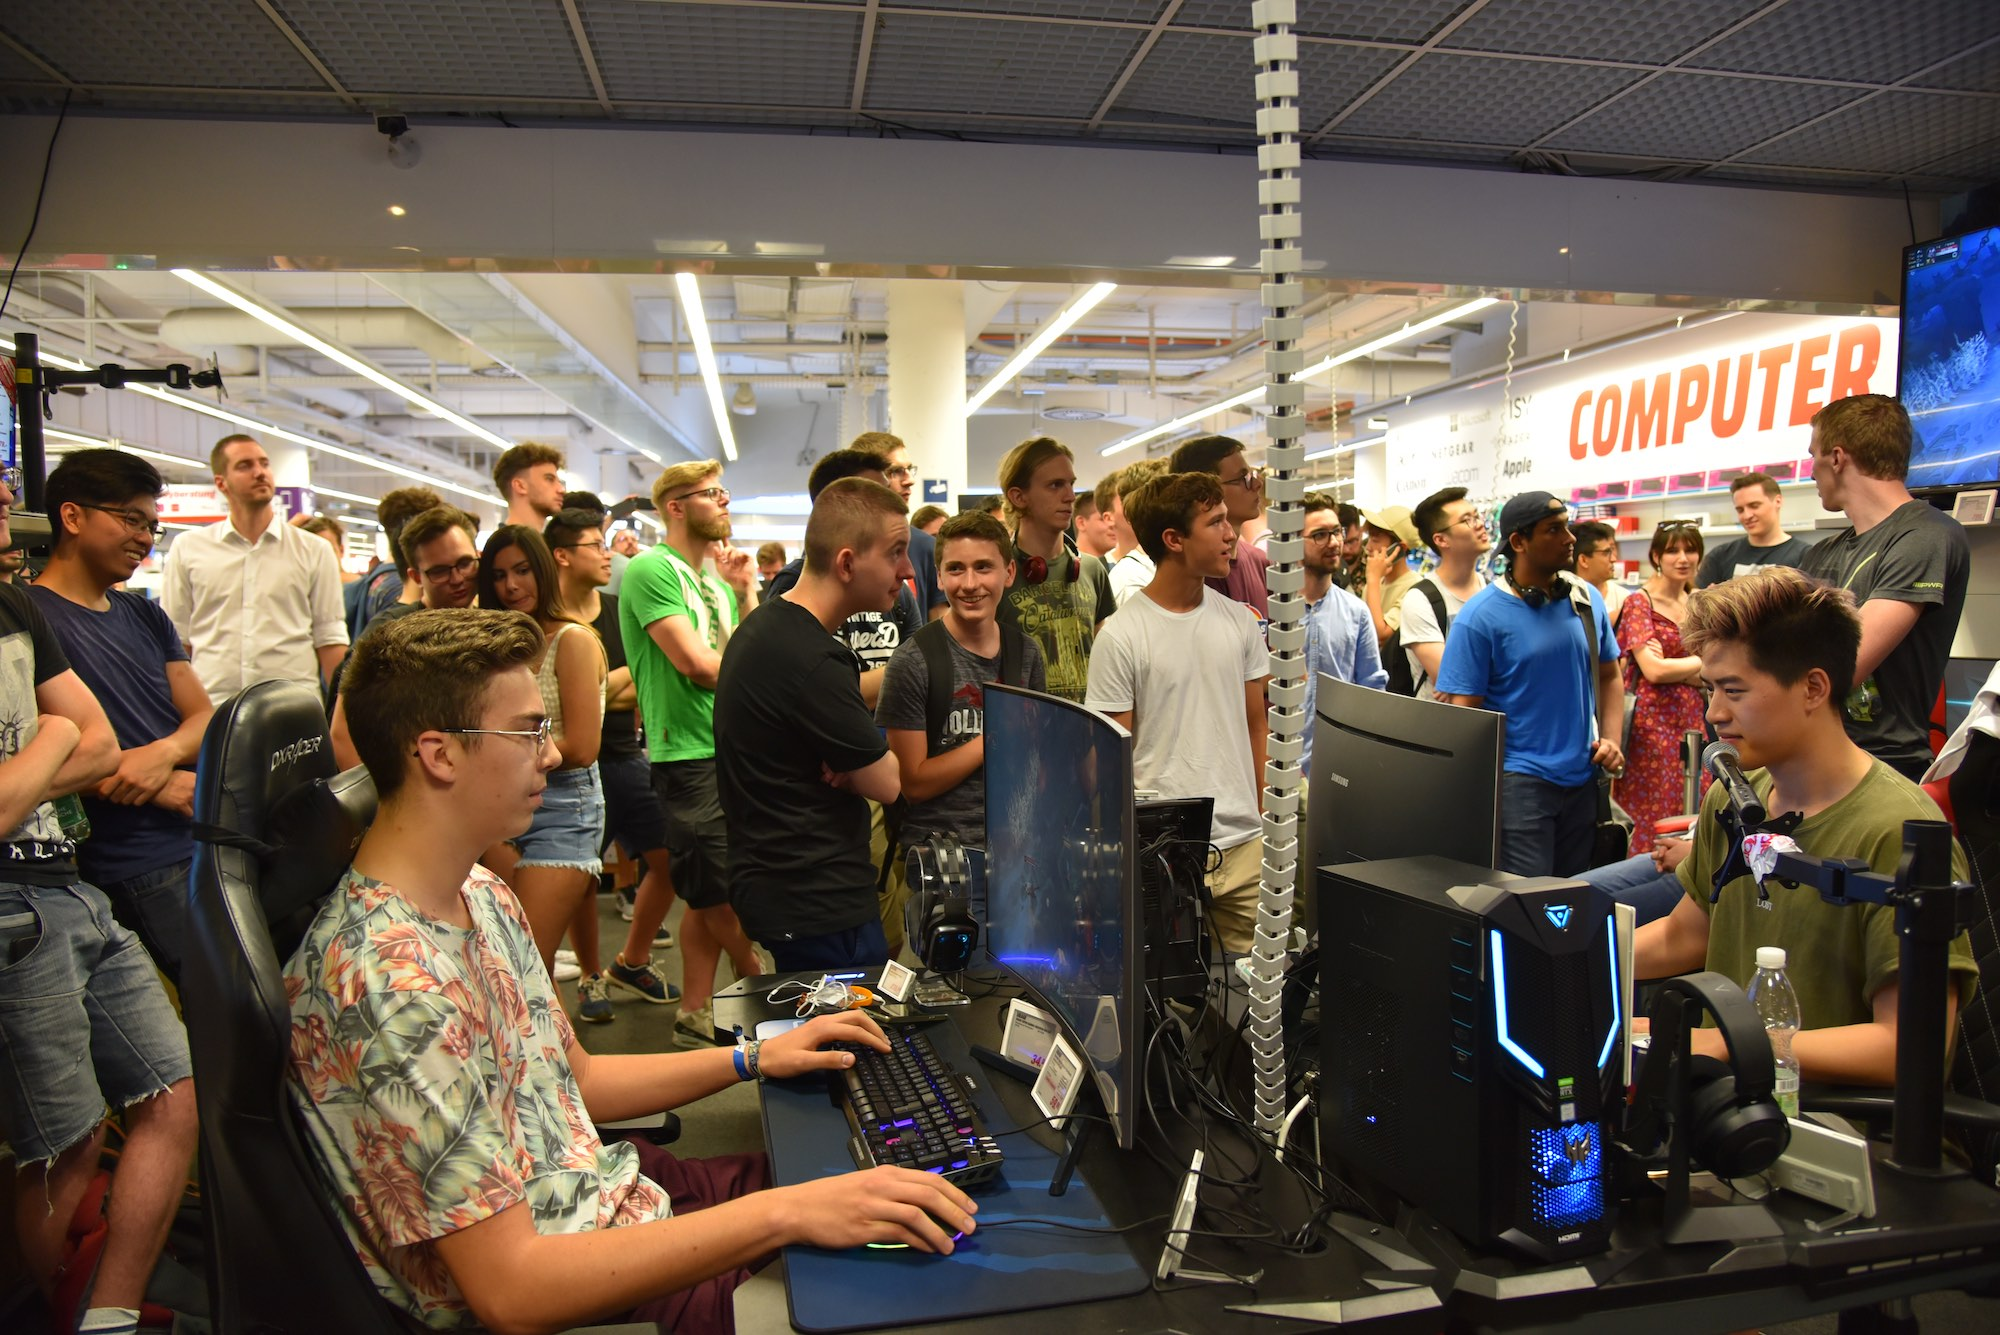 Gamer Sessel Media Markt Großer Ansturm Auf Gaming Event Mit Eni Mediamag At